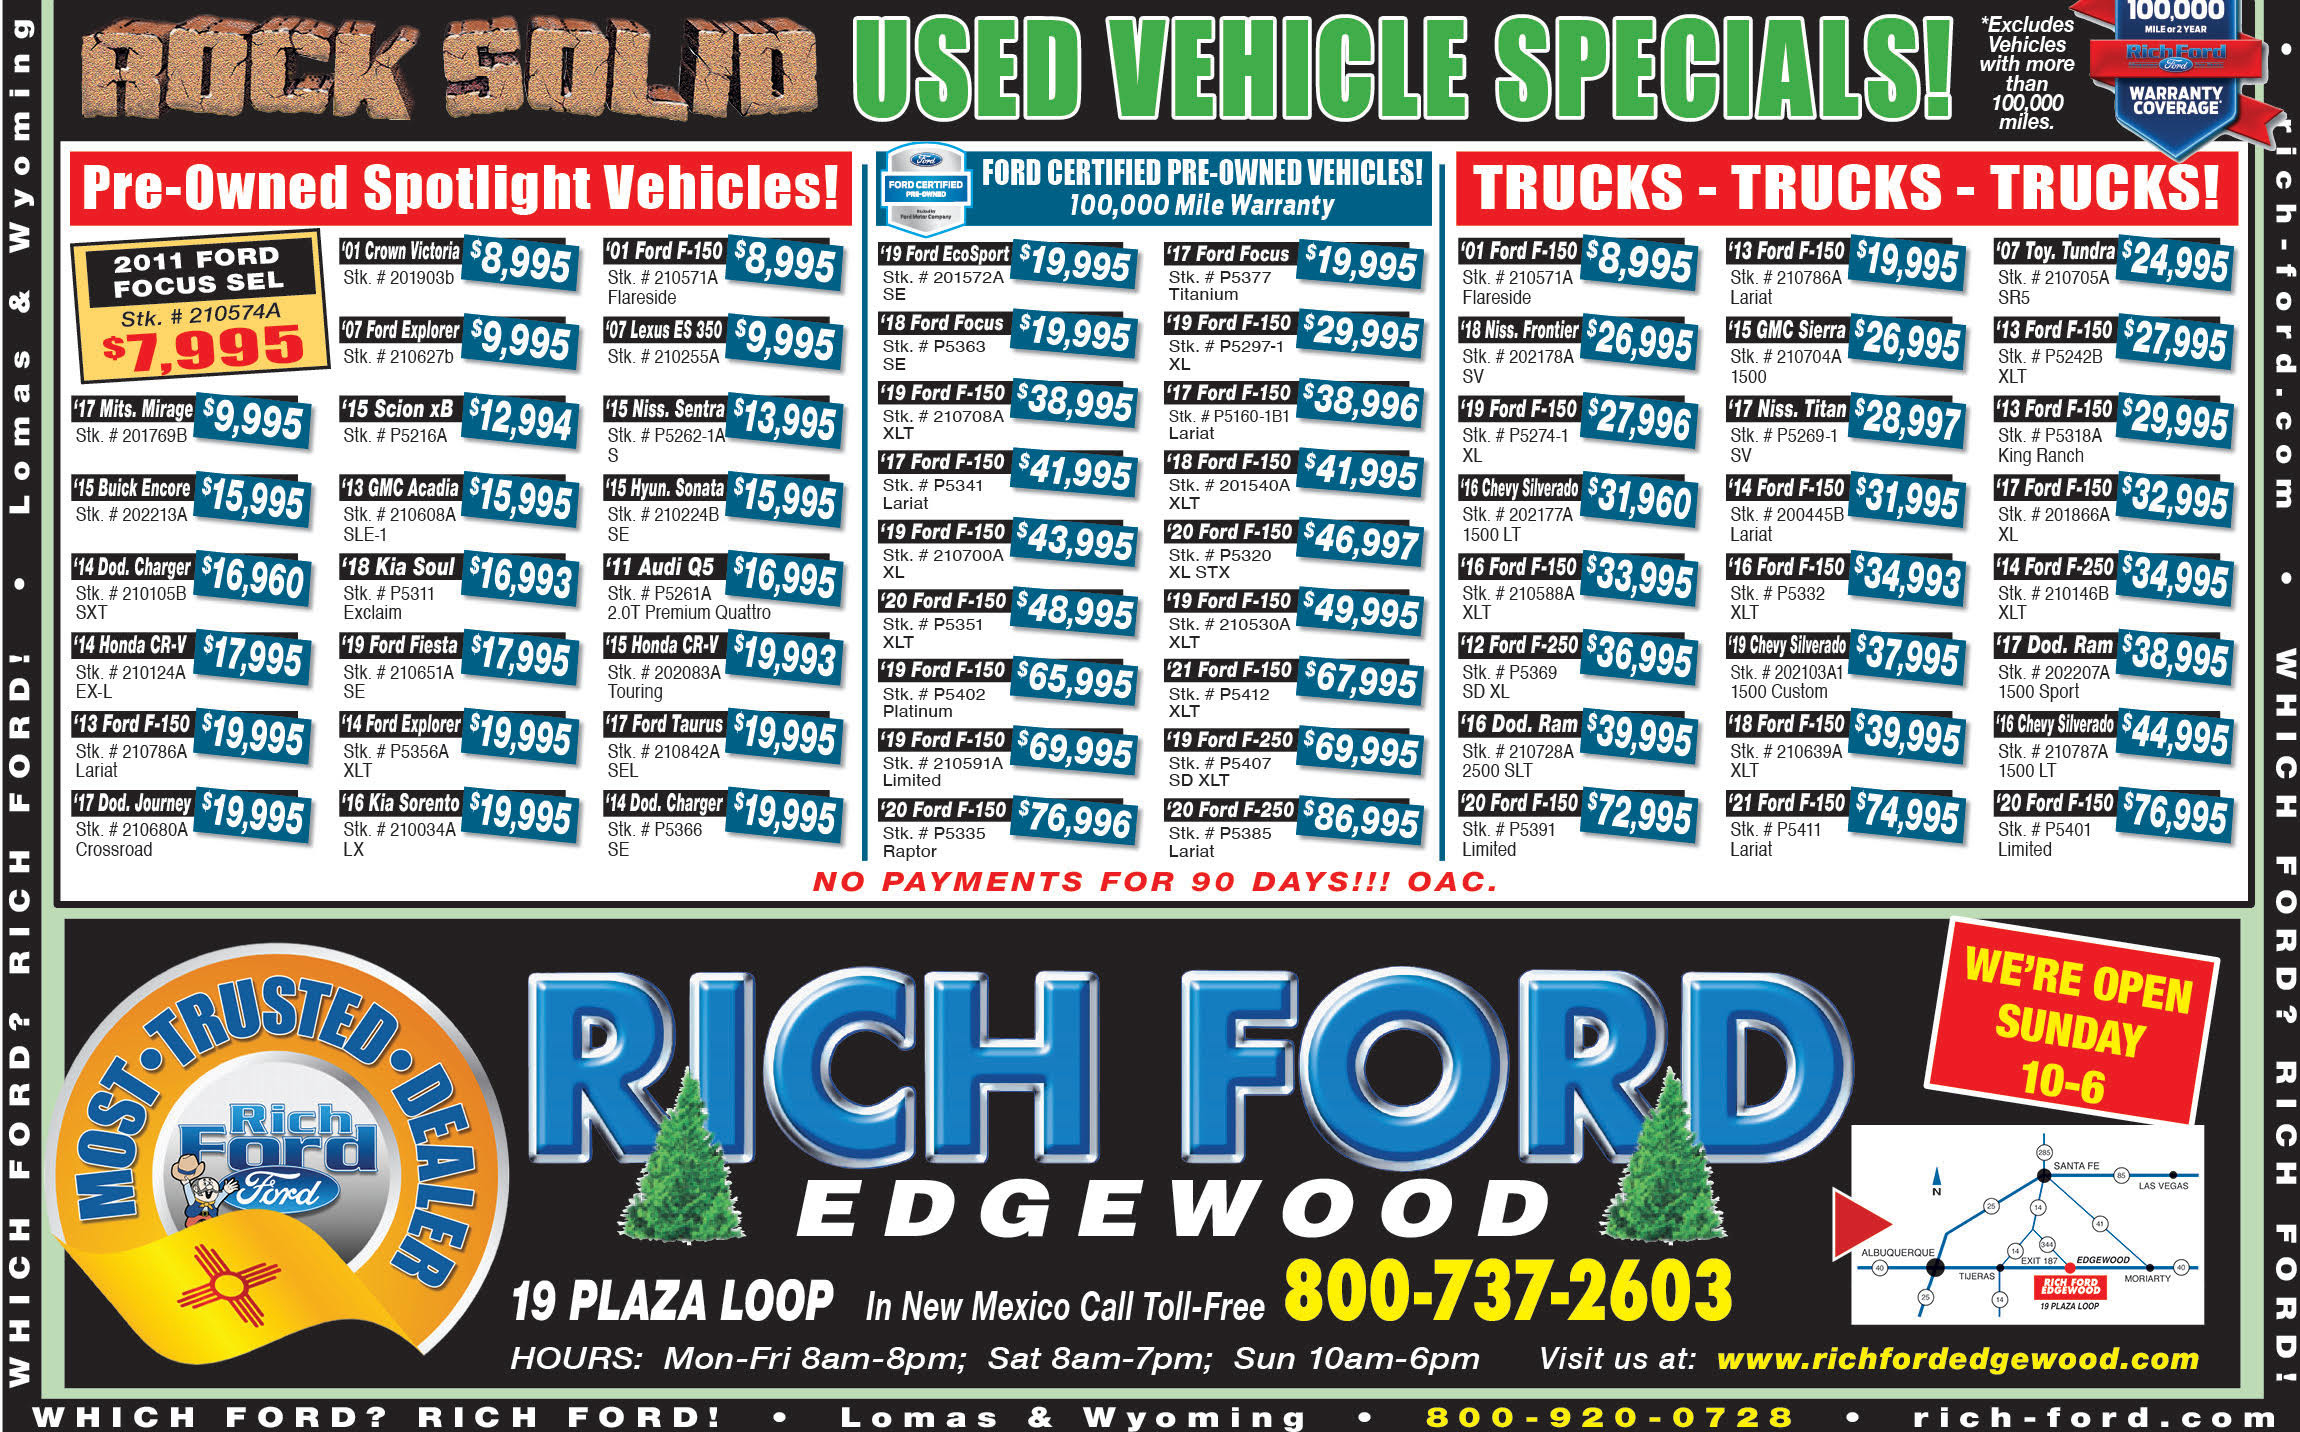 Rich Ford Edgewood Used Vehicle Weekly Special